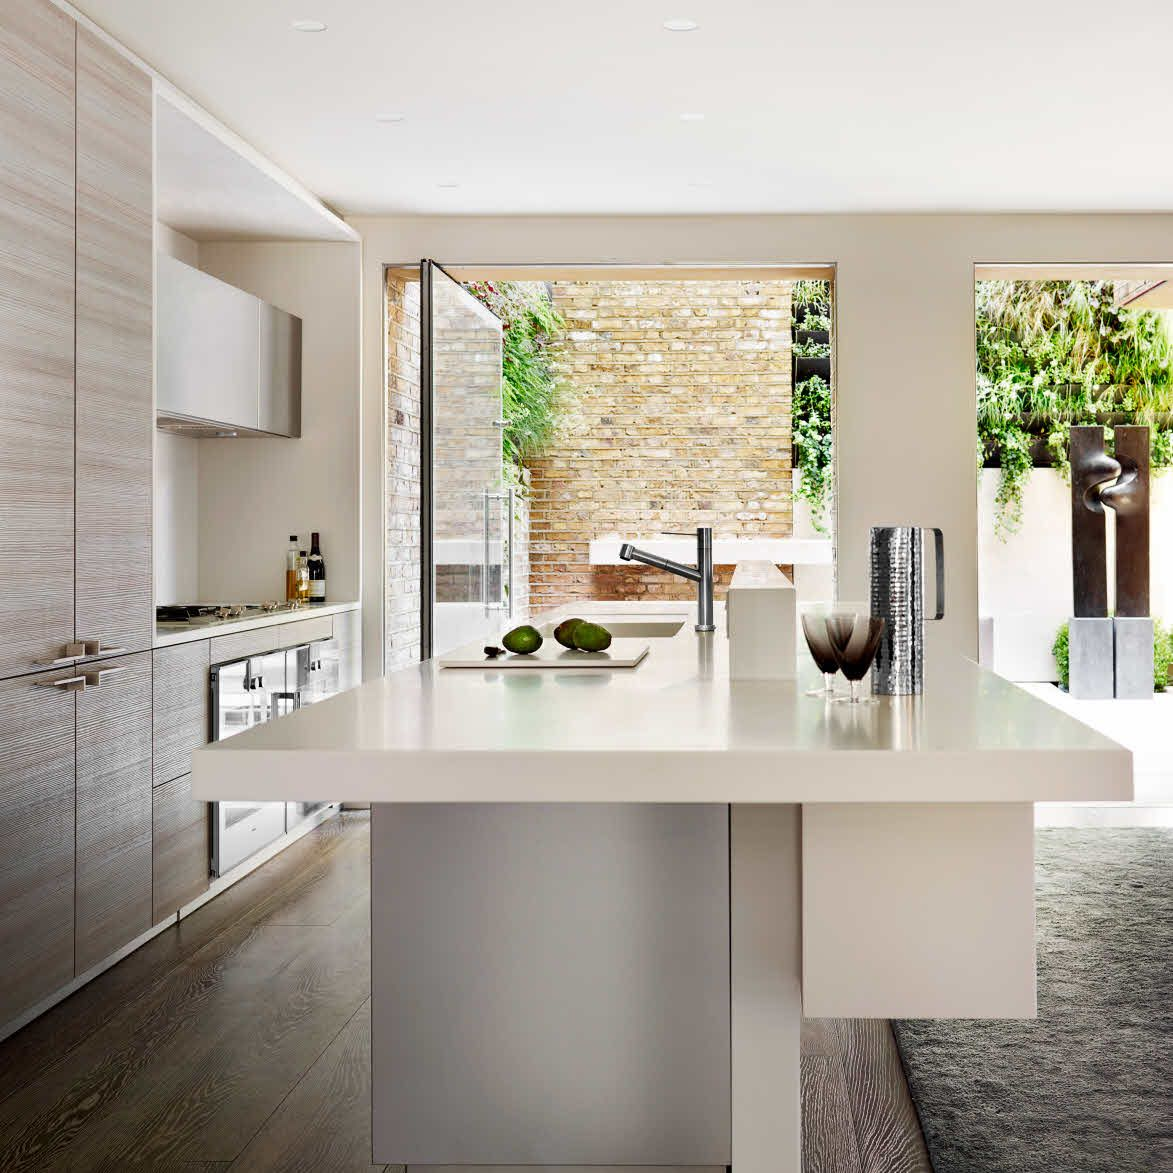 open kitchen living room floor plan pictures%0A Poggenpohl openplan kitchen and dining room connected to the outside     CUSTOM MADE KITCHENS   Pinterest   Open plan kitchen  Open plan and Kitchens